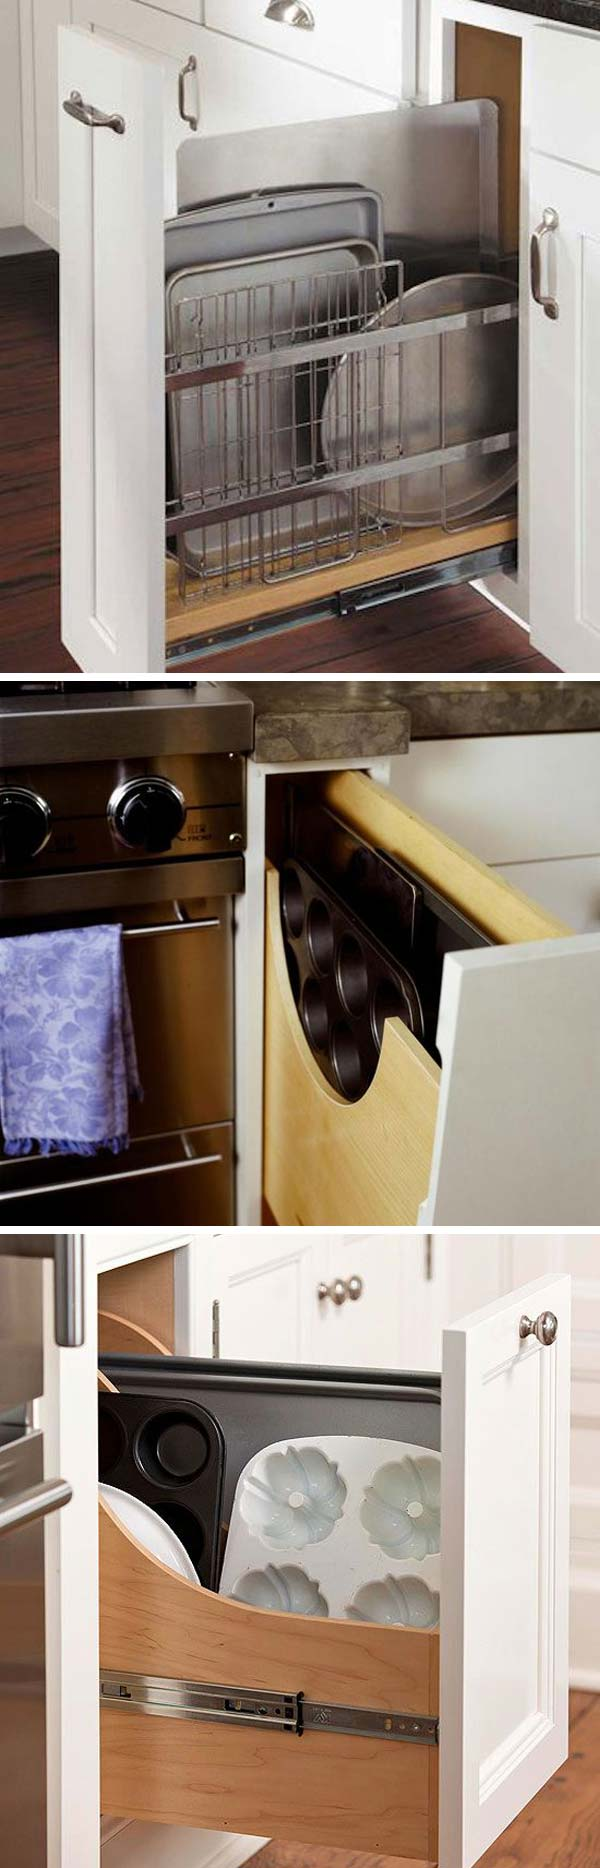 Pull out drawer for cookie sheets.